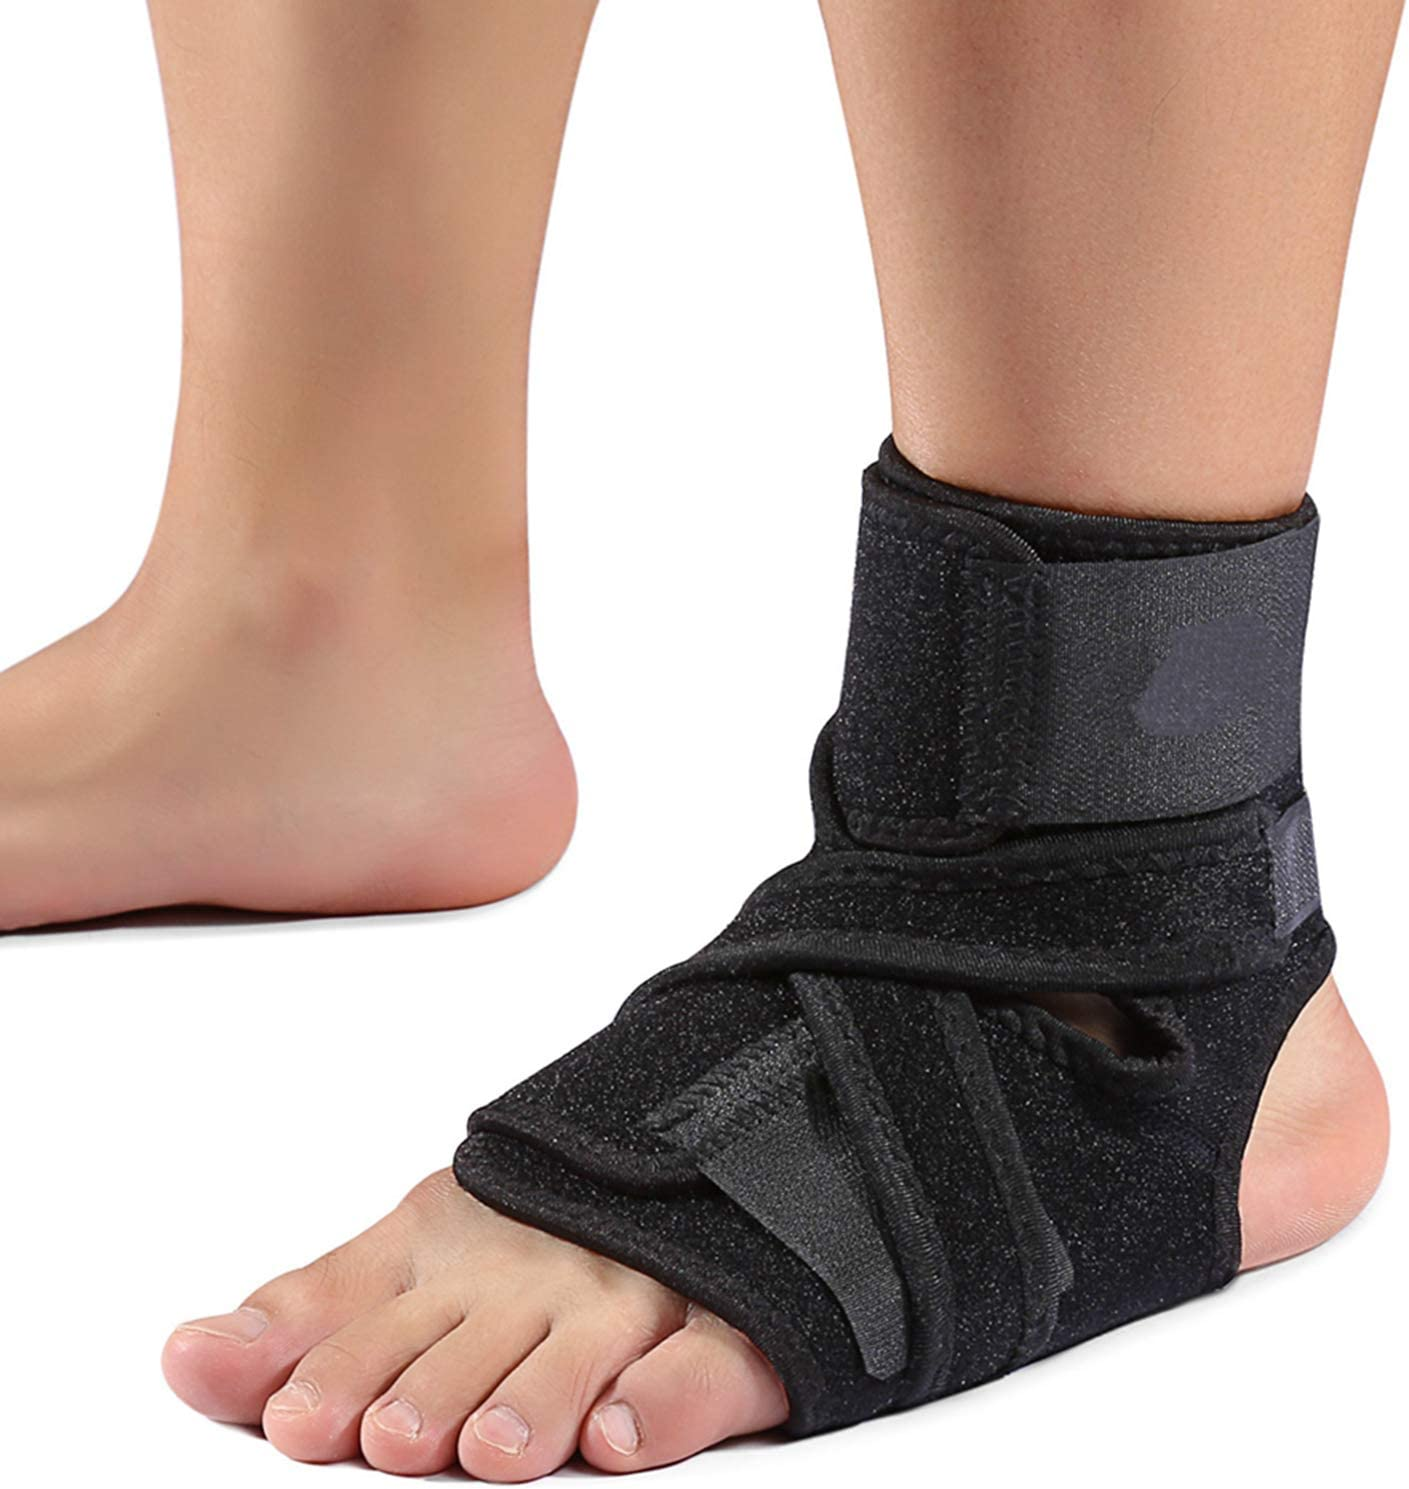 Ankle Tampa Mall Topics on TV Foot Orthosis Support Drop AFO Up Brace Fi